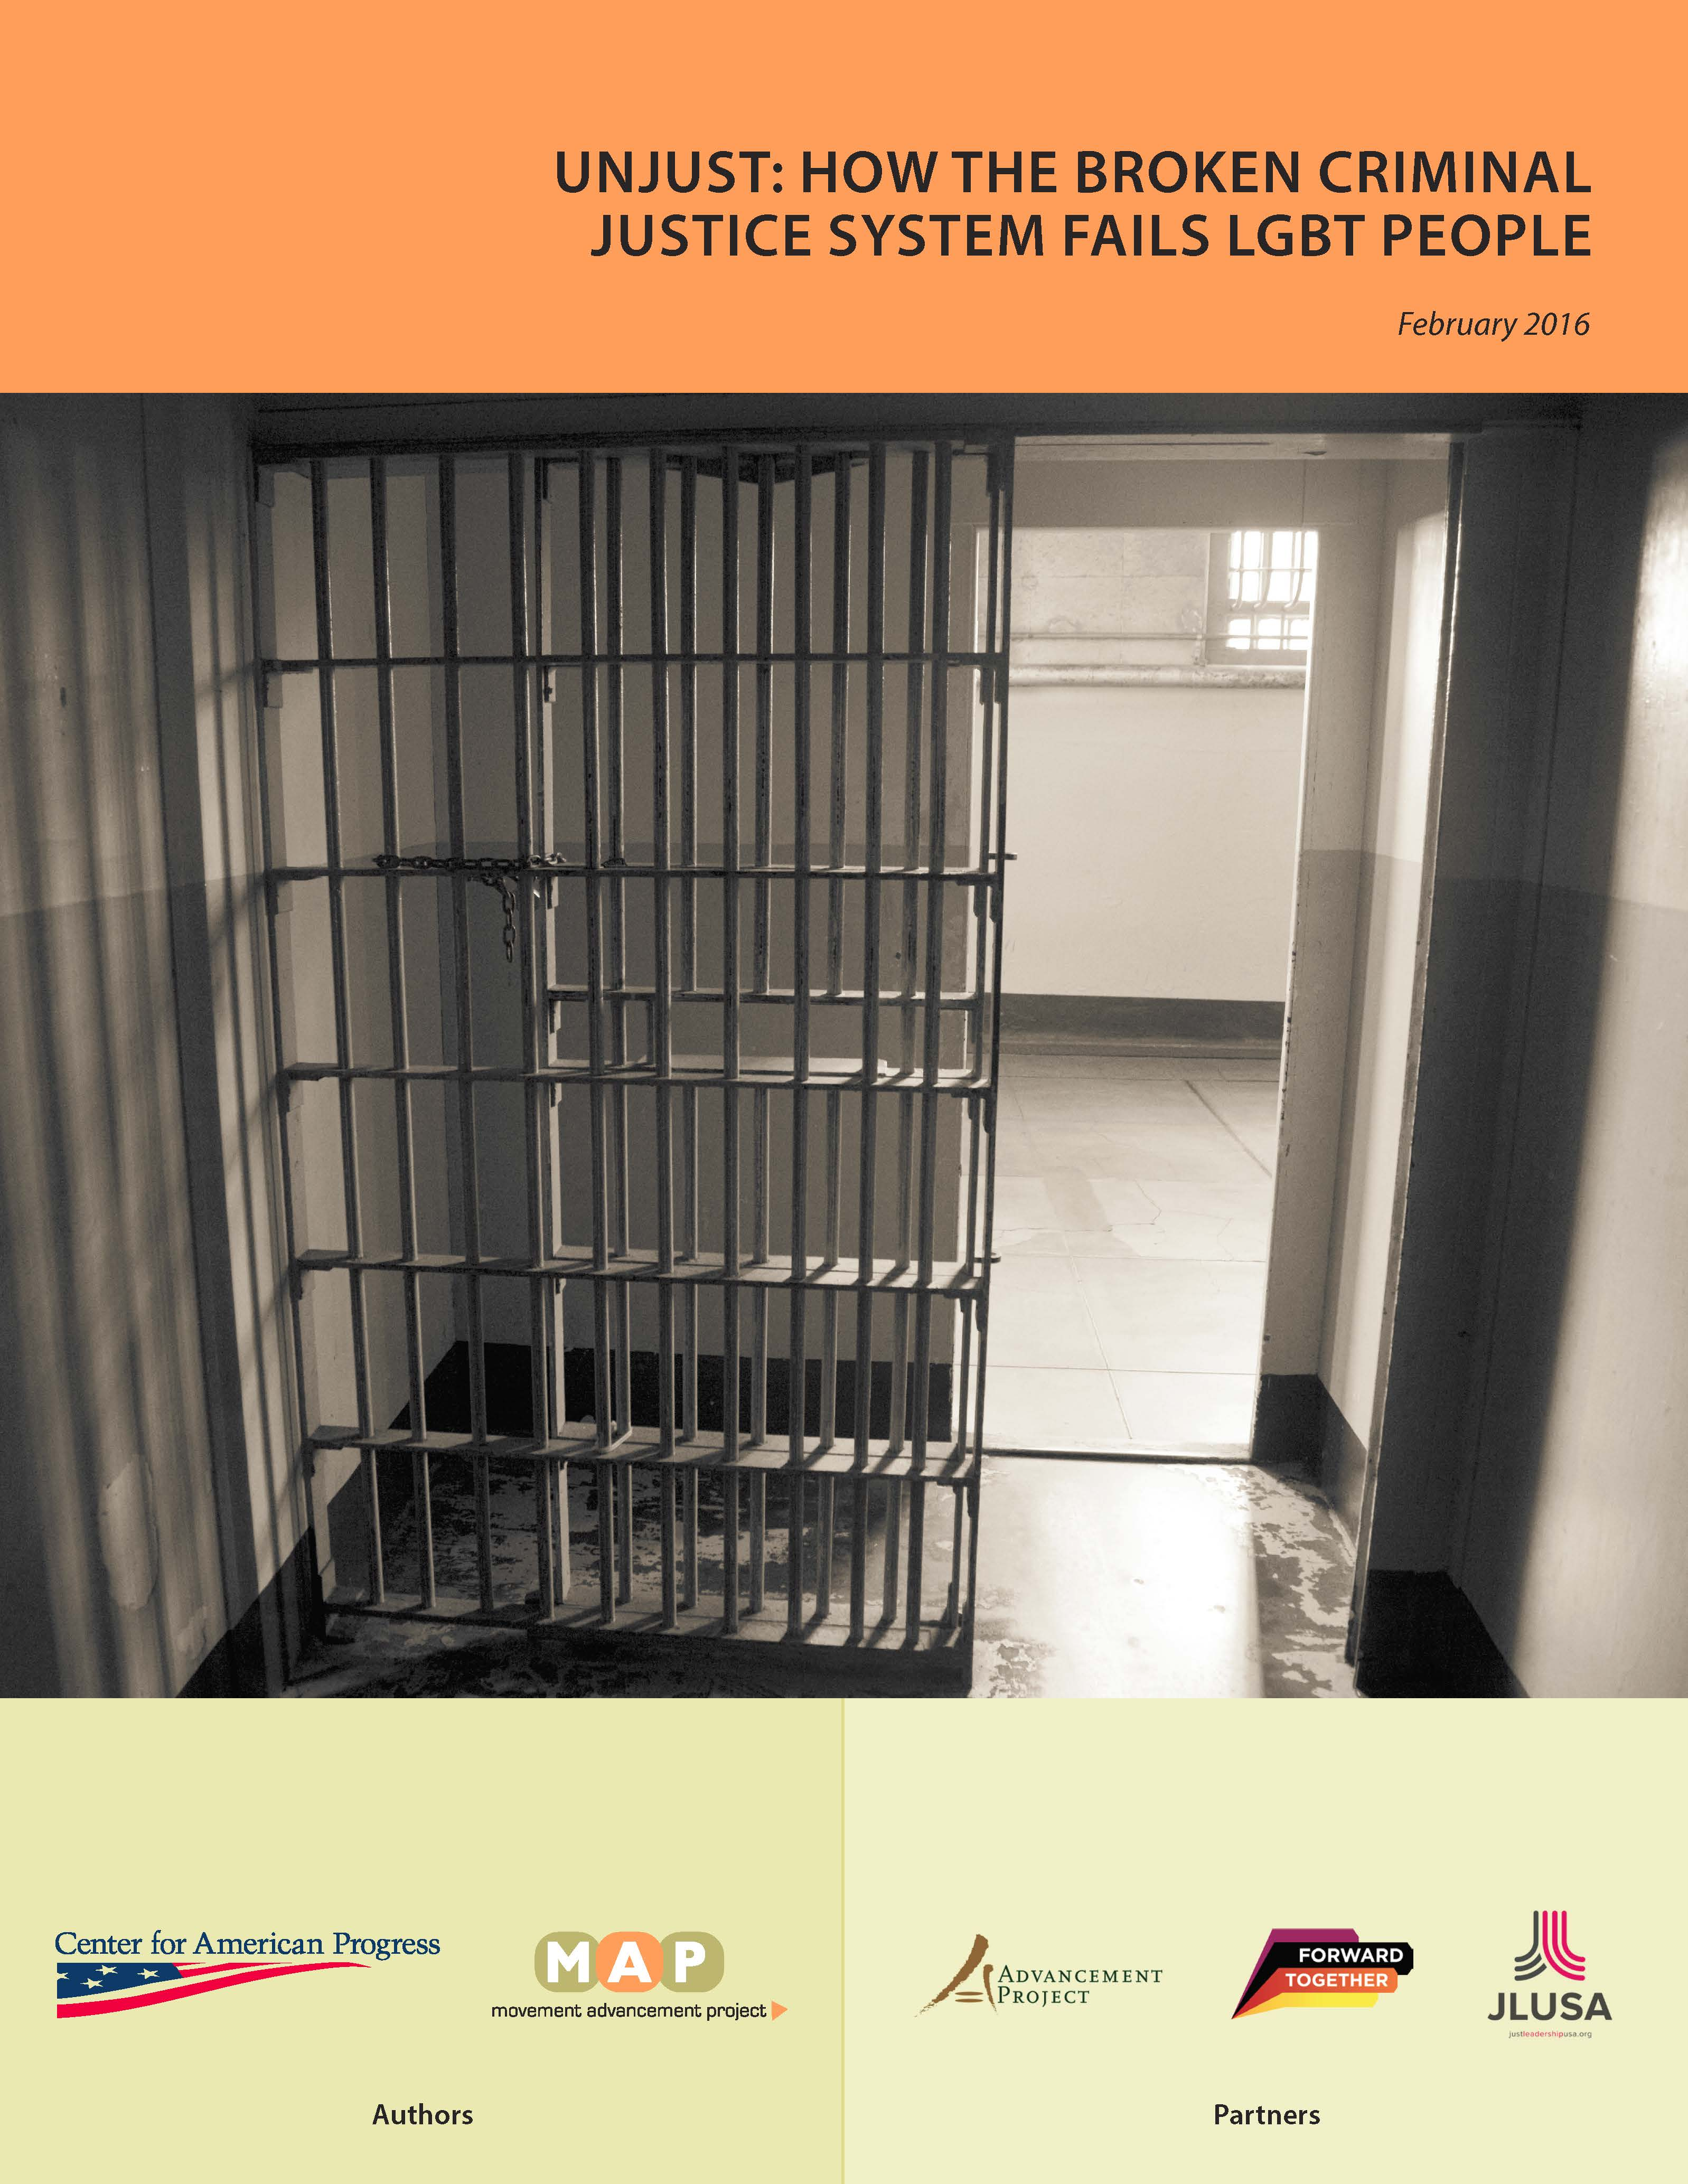 criminal system The criminal justice system in america has both advantages and disadvantages the process of the criminal justice system is different from state to state the federal criminal justice system is also different from the states' criminal justice system, featuring its own procedures, rules, and legal terms to describe the various aspects of the proceedings.